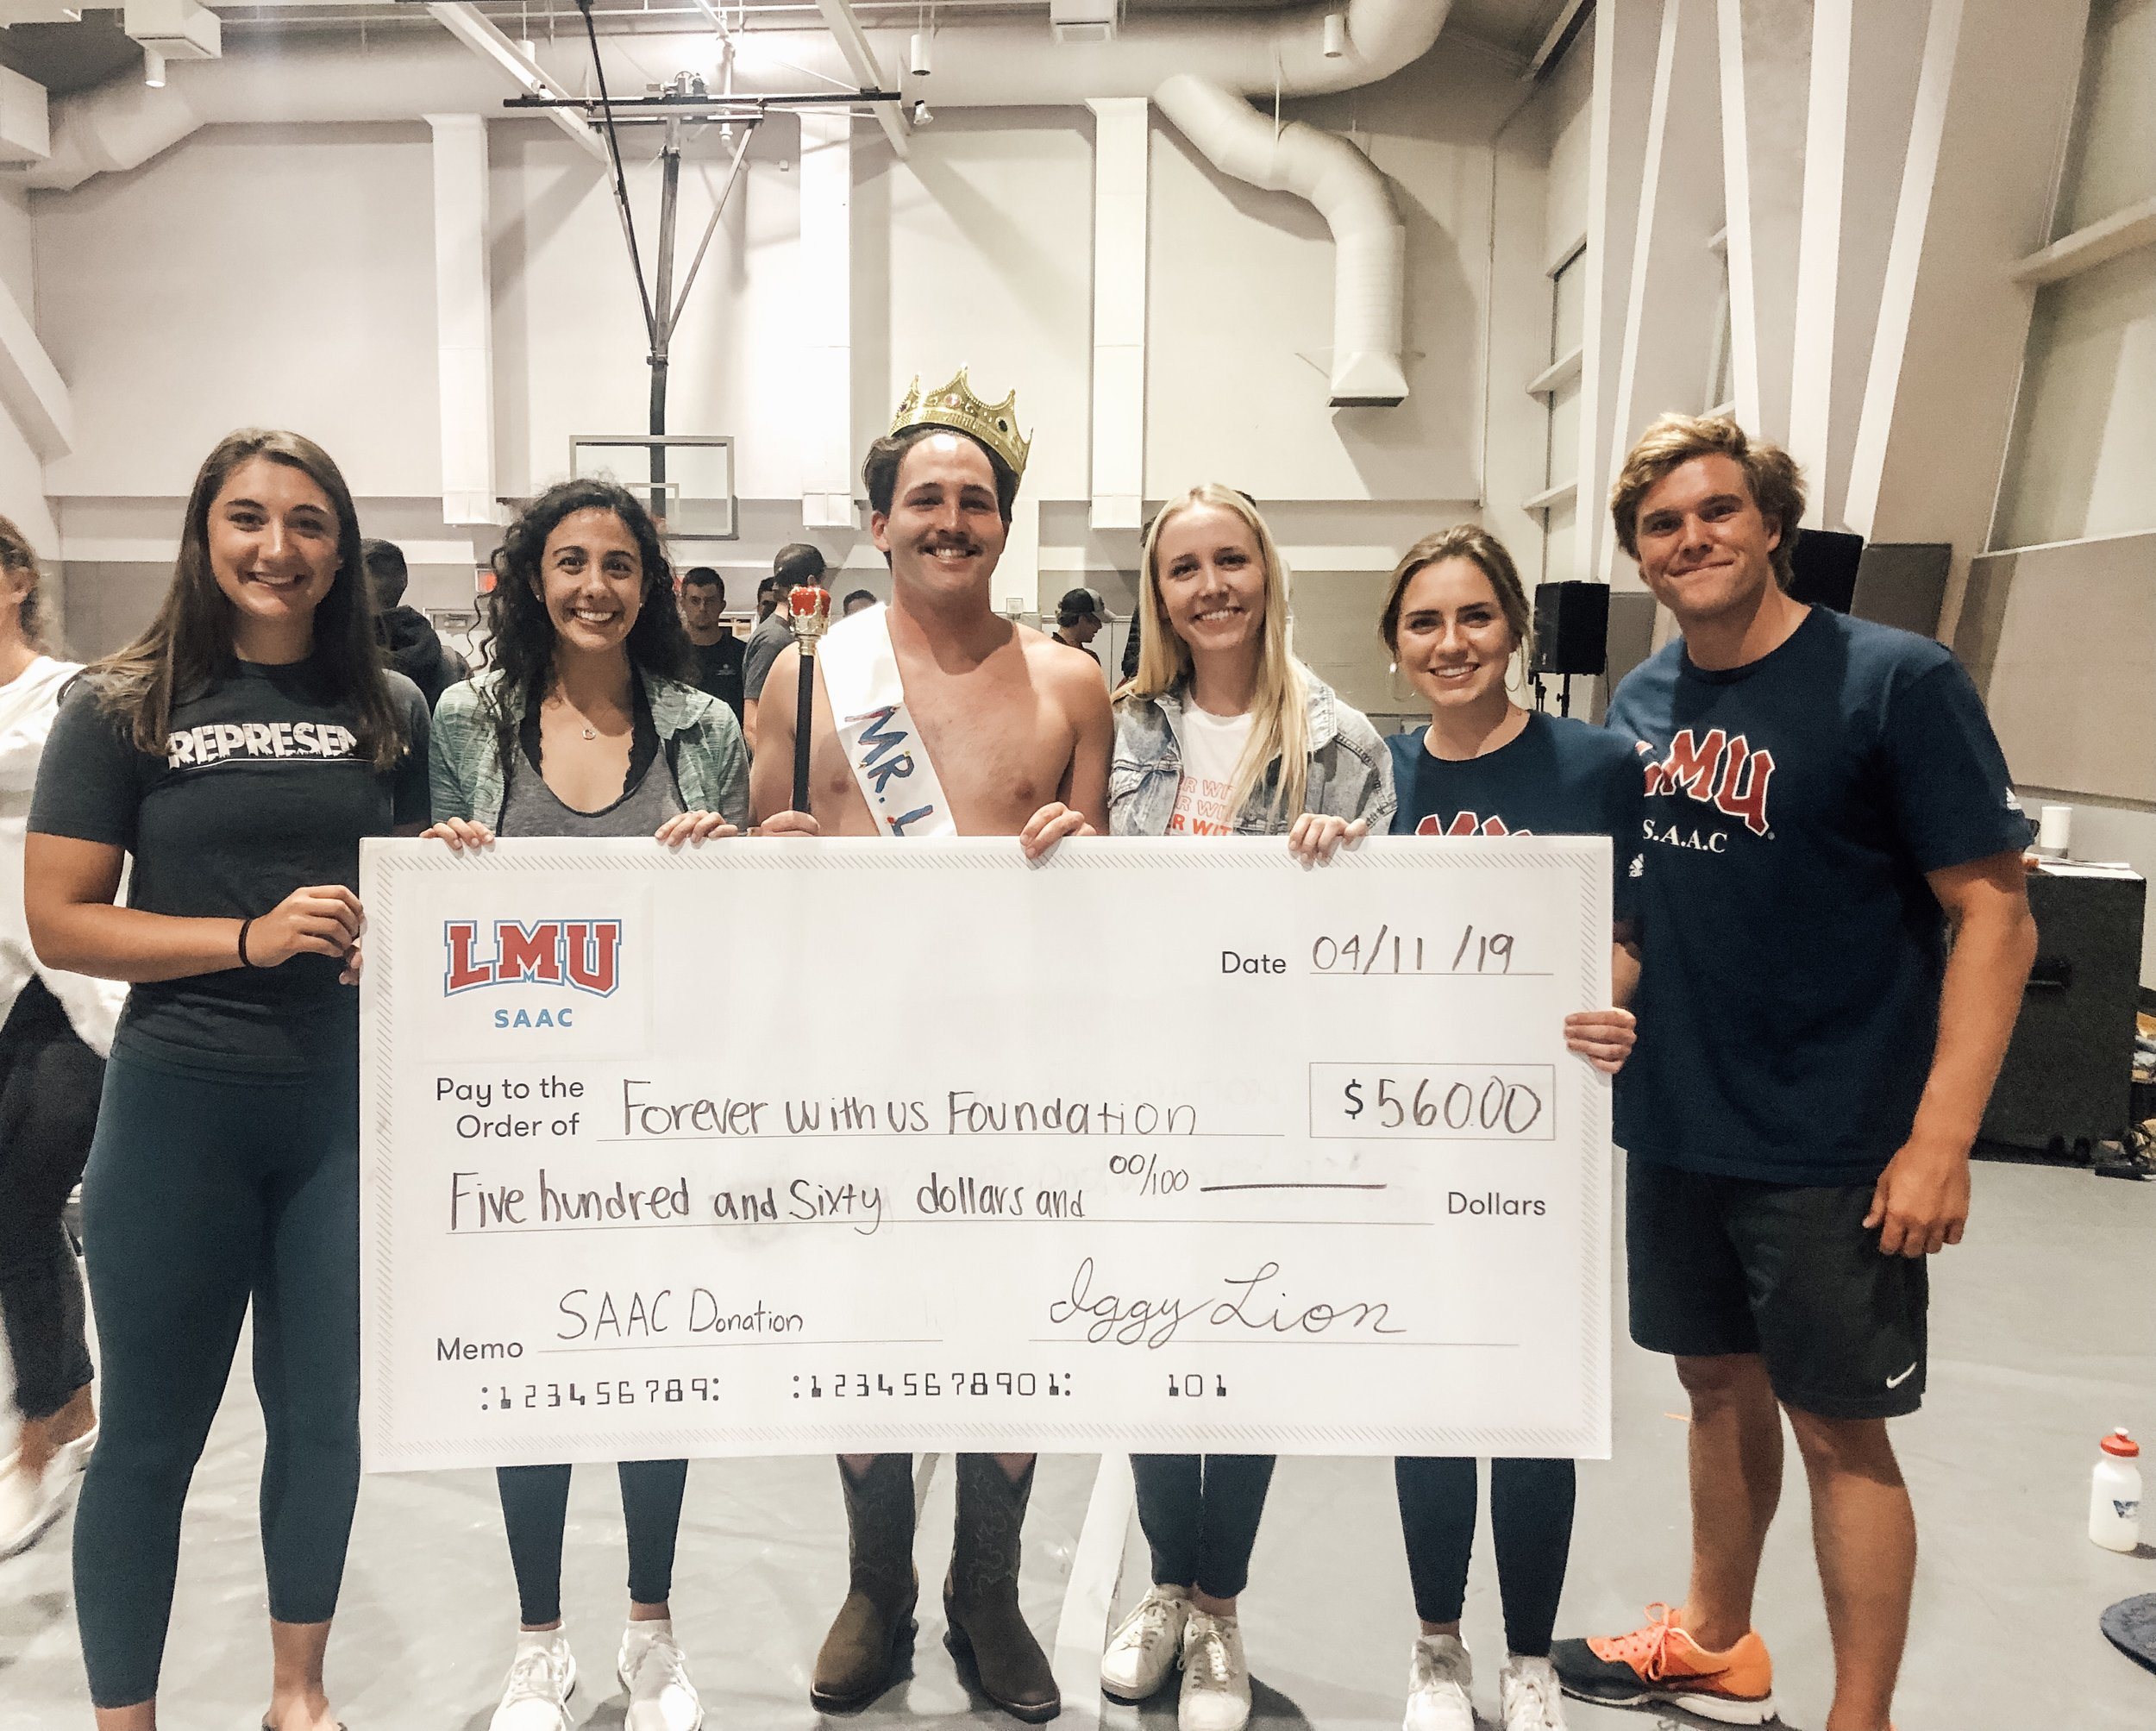 LMU SAAC - 04/11/19LMU chose Forever With Us as the non-profit for their annual talent show event. Every sport competed for the grand prize of Mr. LMU! This event raised $600!